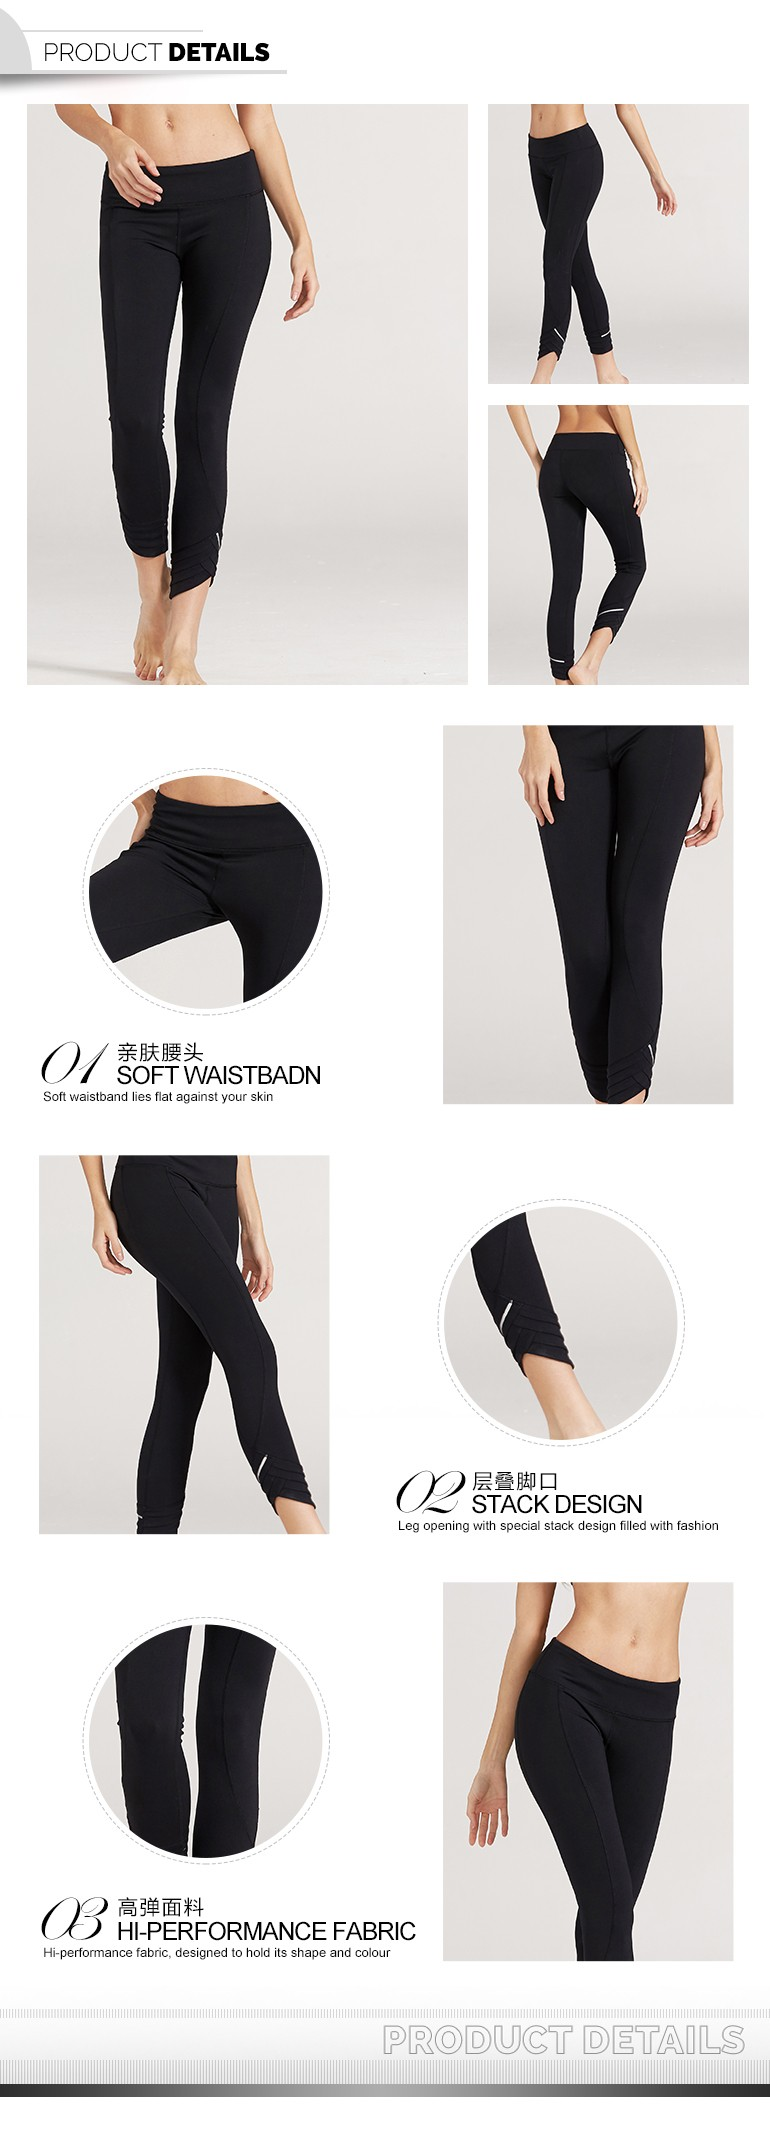 High Quality Sexy Sport Running Yoga Leggings Women's Gym Pants Wholesale